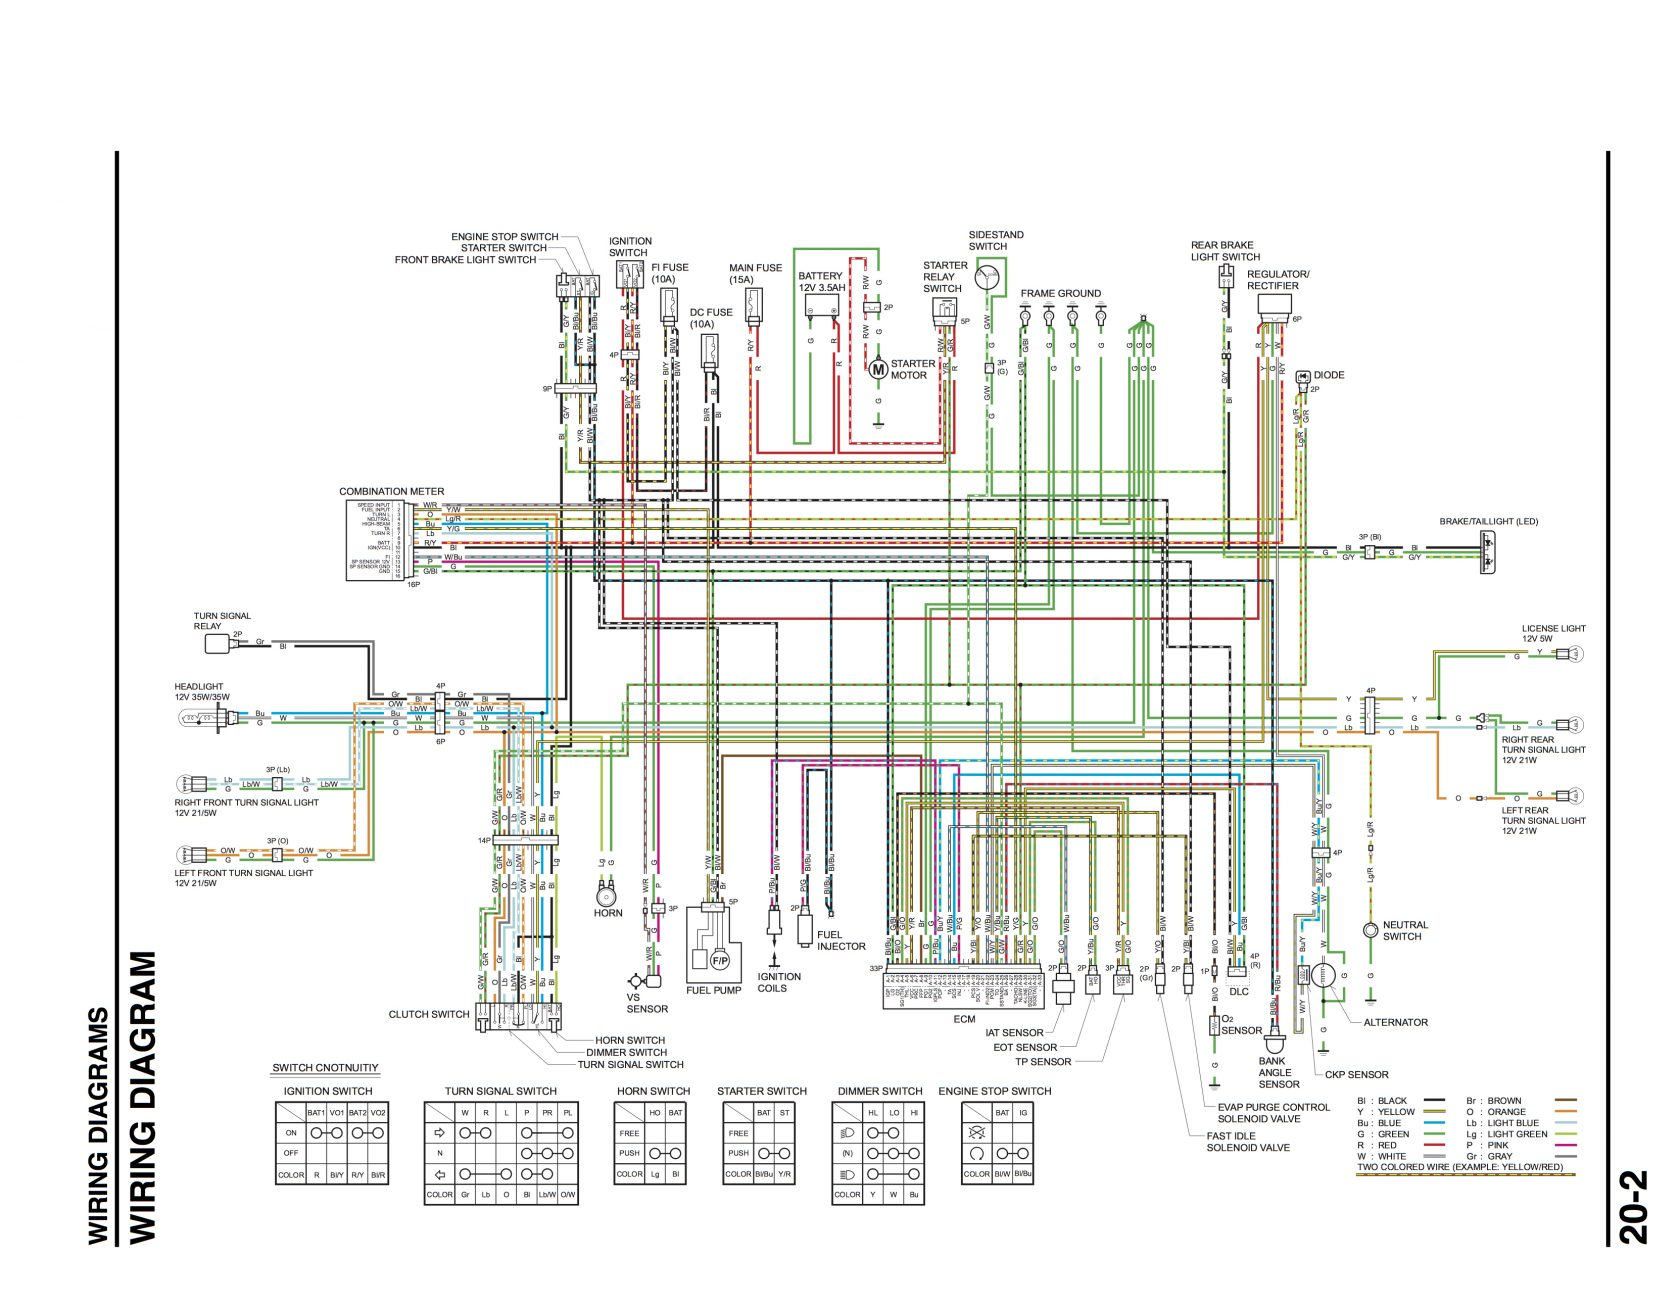 ☑ 2006 Peterbilt Wiring Diagrams HD Quality ☑ phase-diagrams .twirlinglucca.itDiagram Database - Twirlinglucca.it